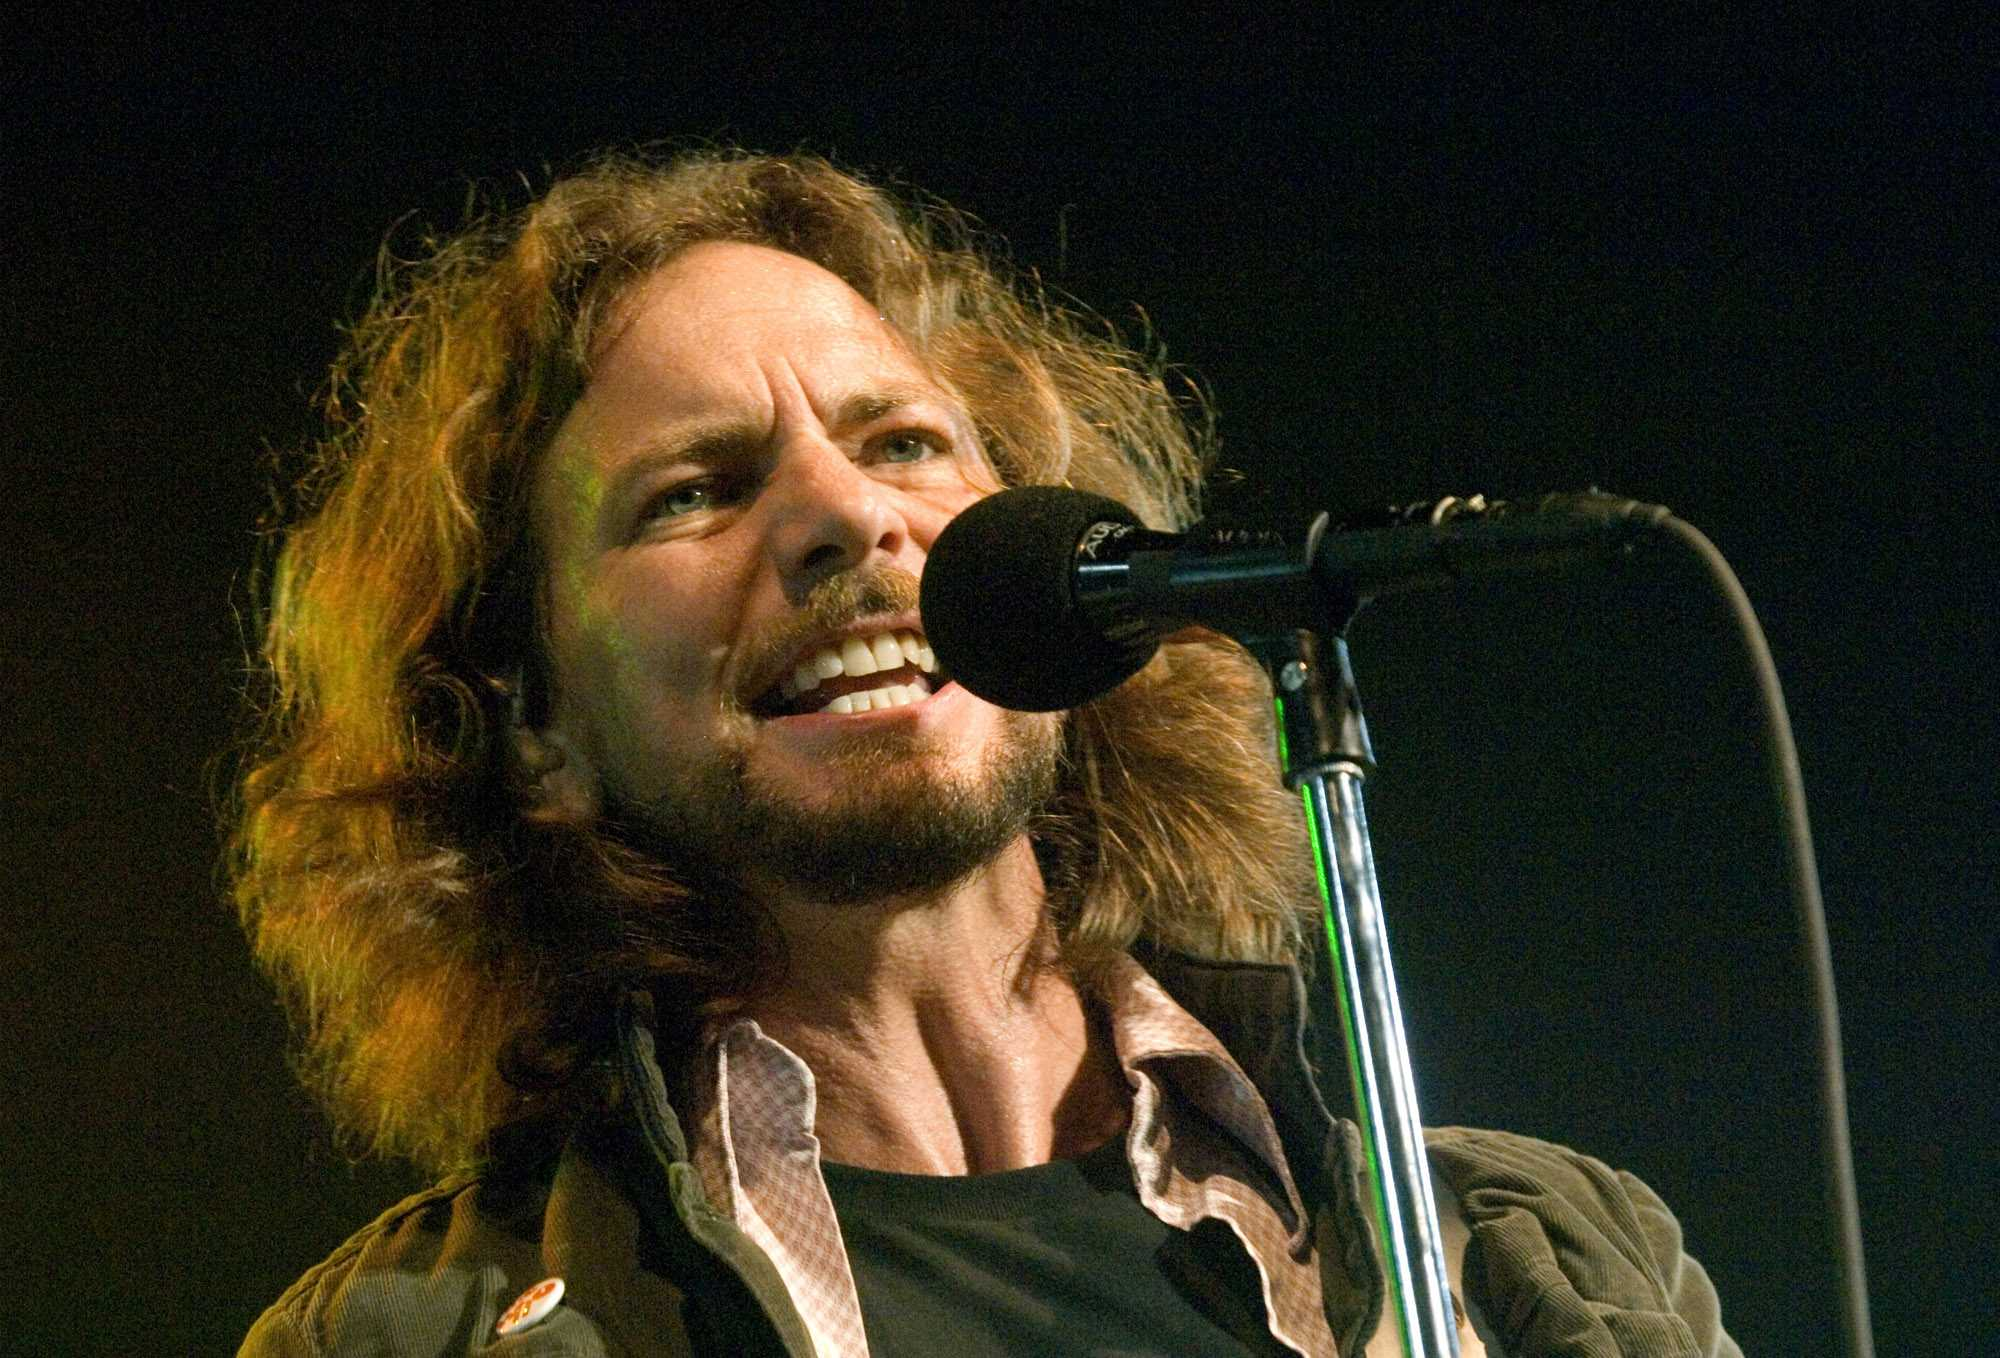 Ed Vedder from Pearl Jam is upset at the f ckers in Oklahoma